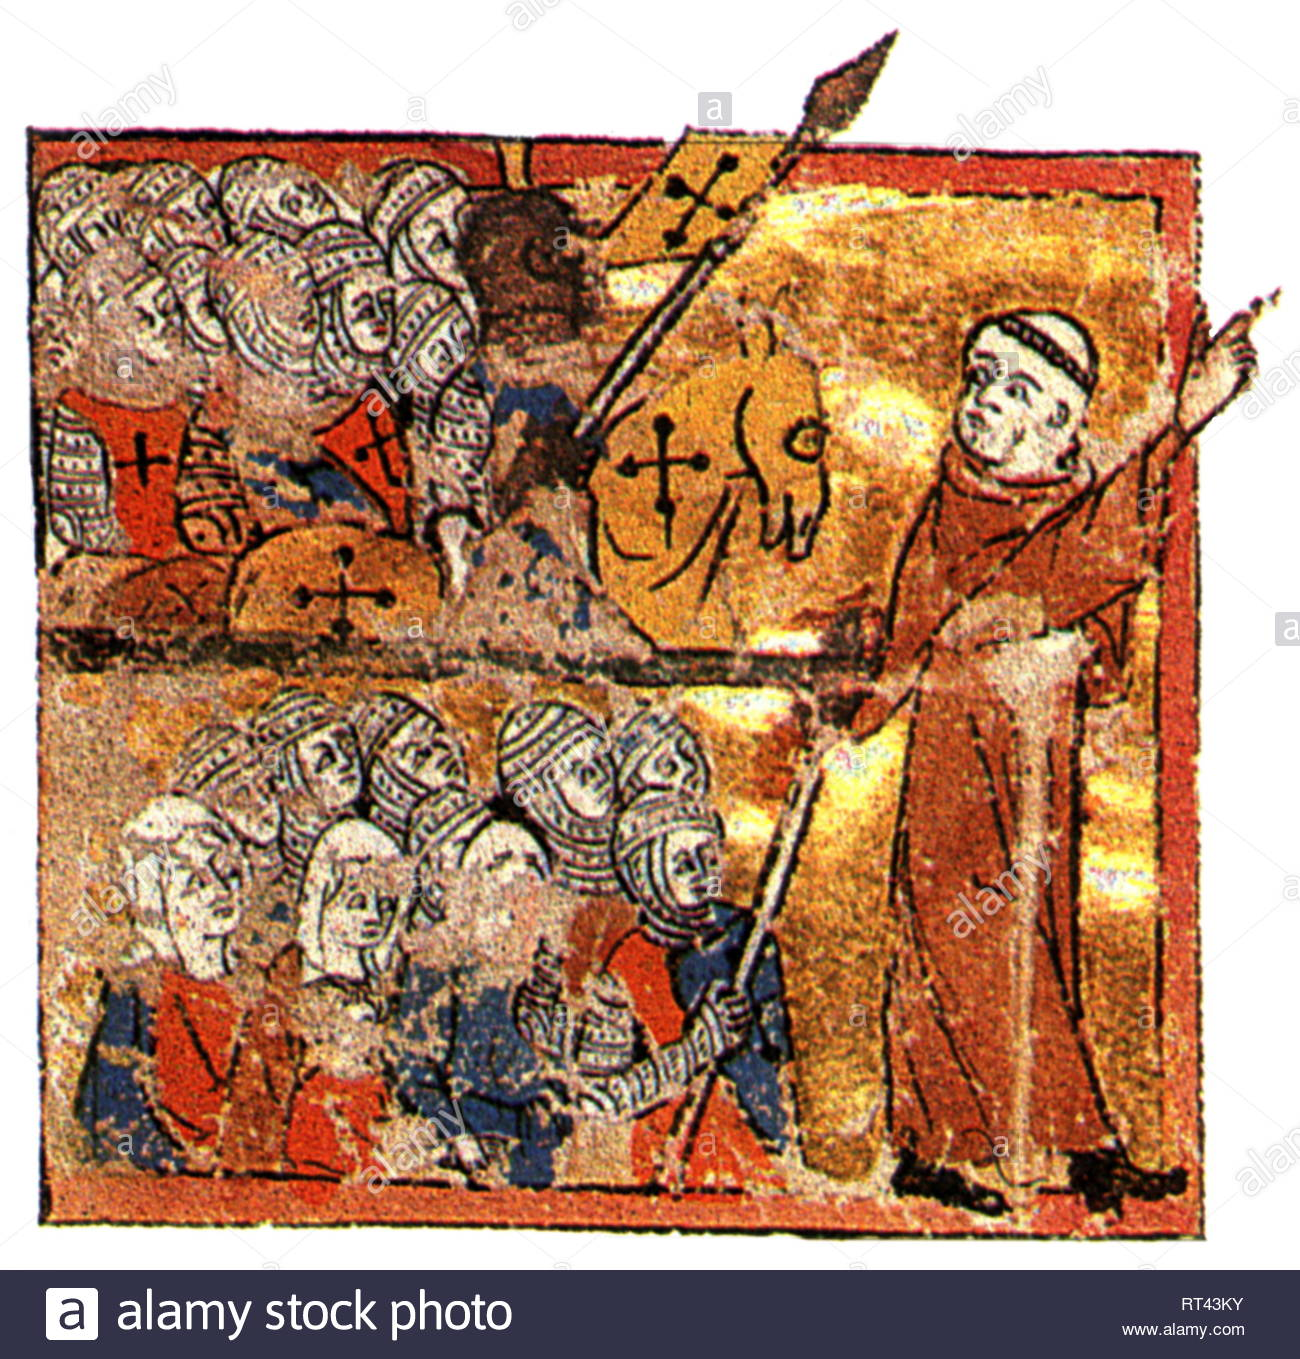 Middle Ages, crusades, First Crusade 1096 - 1099, Peter of Hermit is leading the crusaders to the Holy Land, 1096, print based on miniature, Abreviamen de las Estorias, circa 1350, Additional-Rights-Clearance-Info-Not-Available - Stock Image